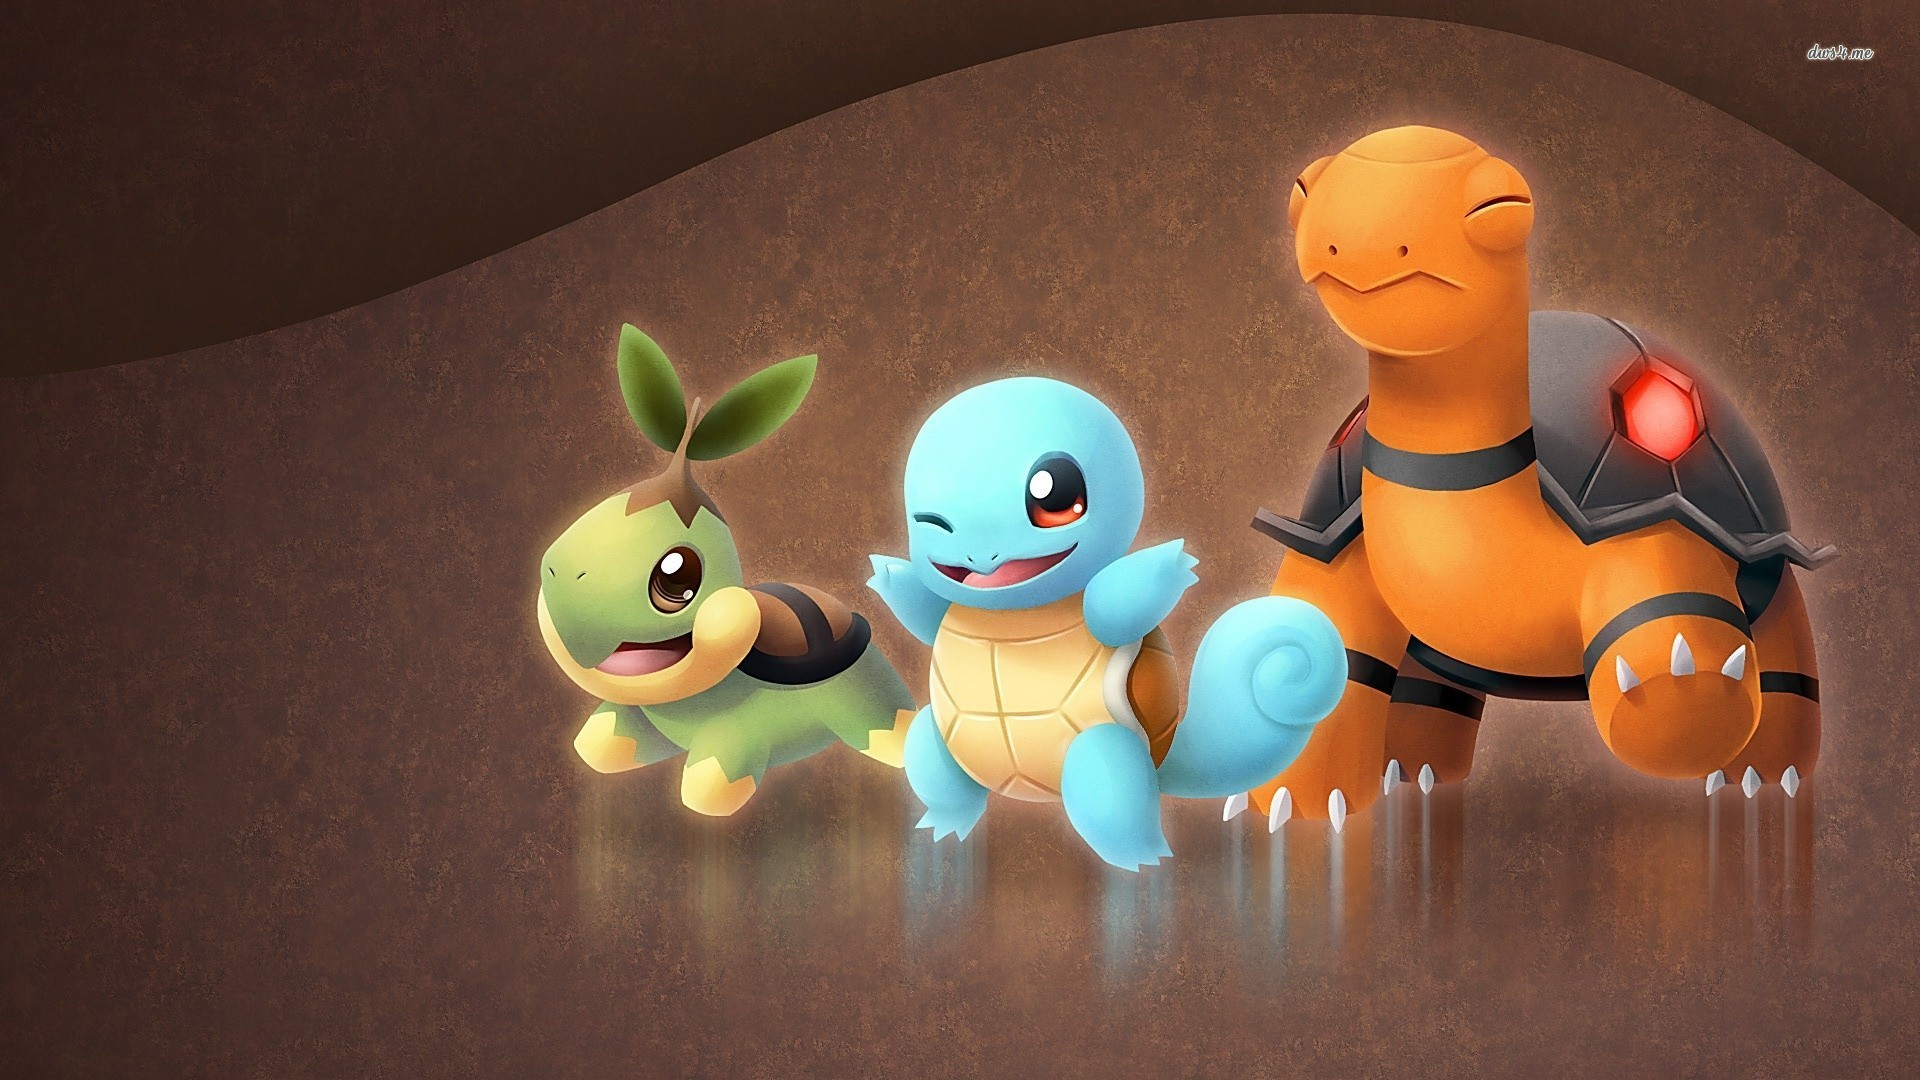 Squirtle Turtwig   Pokemon wallpaper   Anime wallpapers   11343 1920x1080